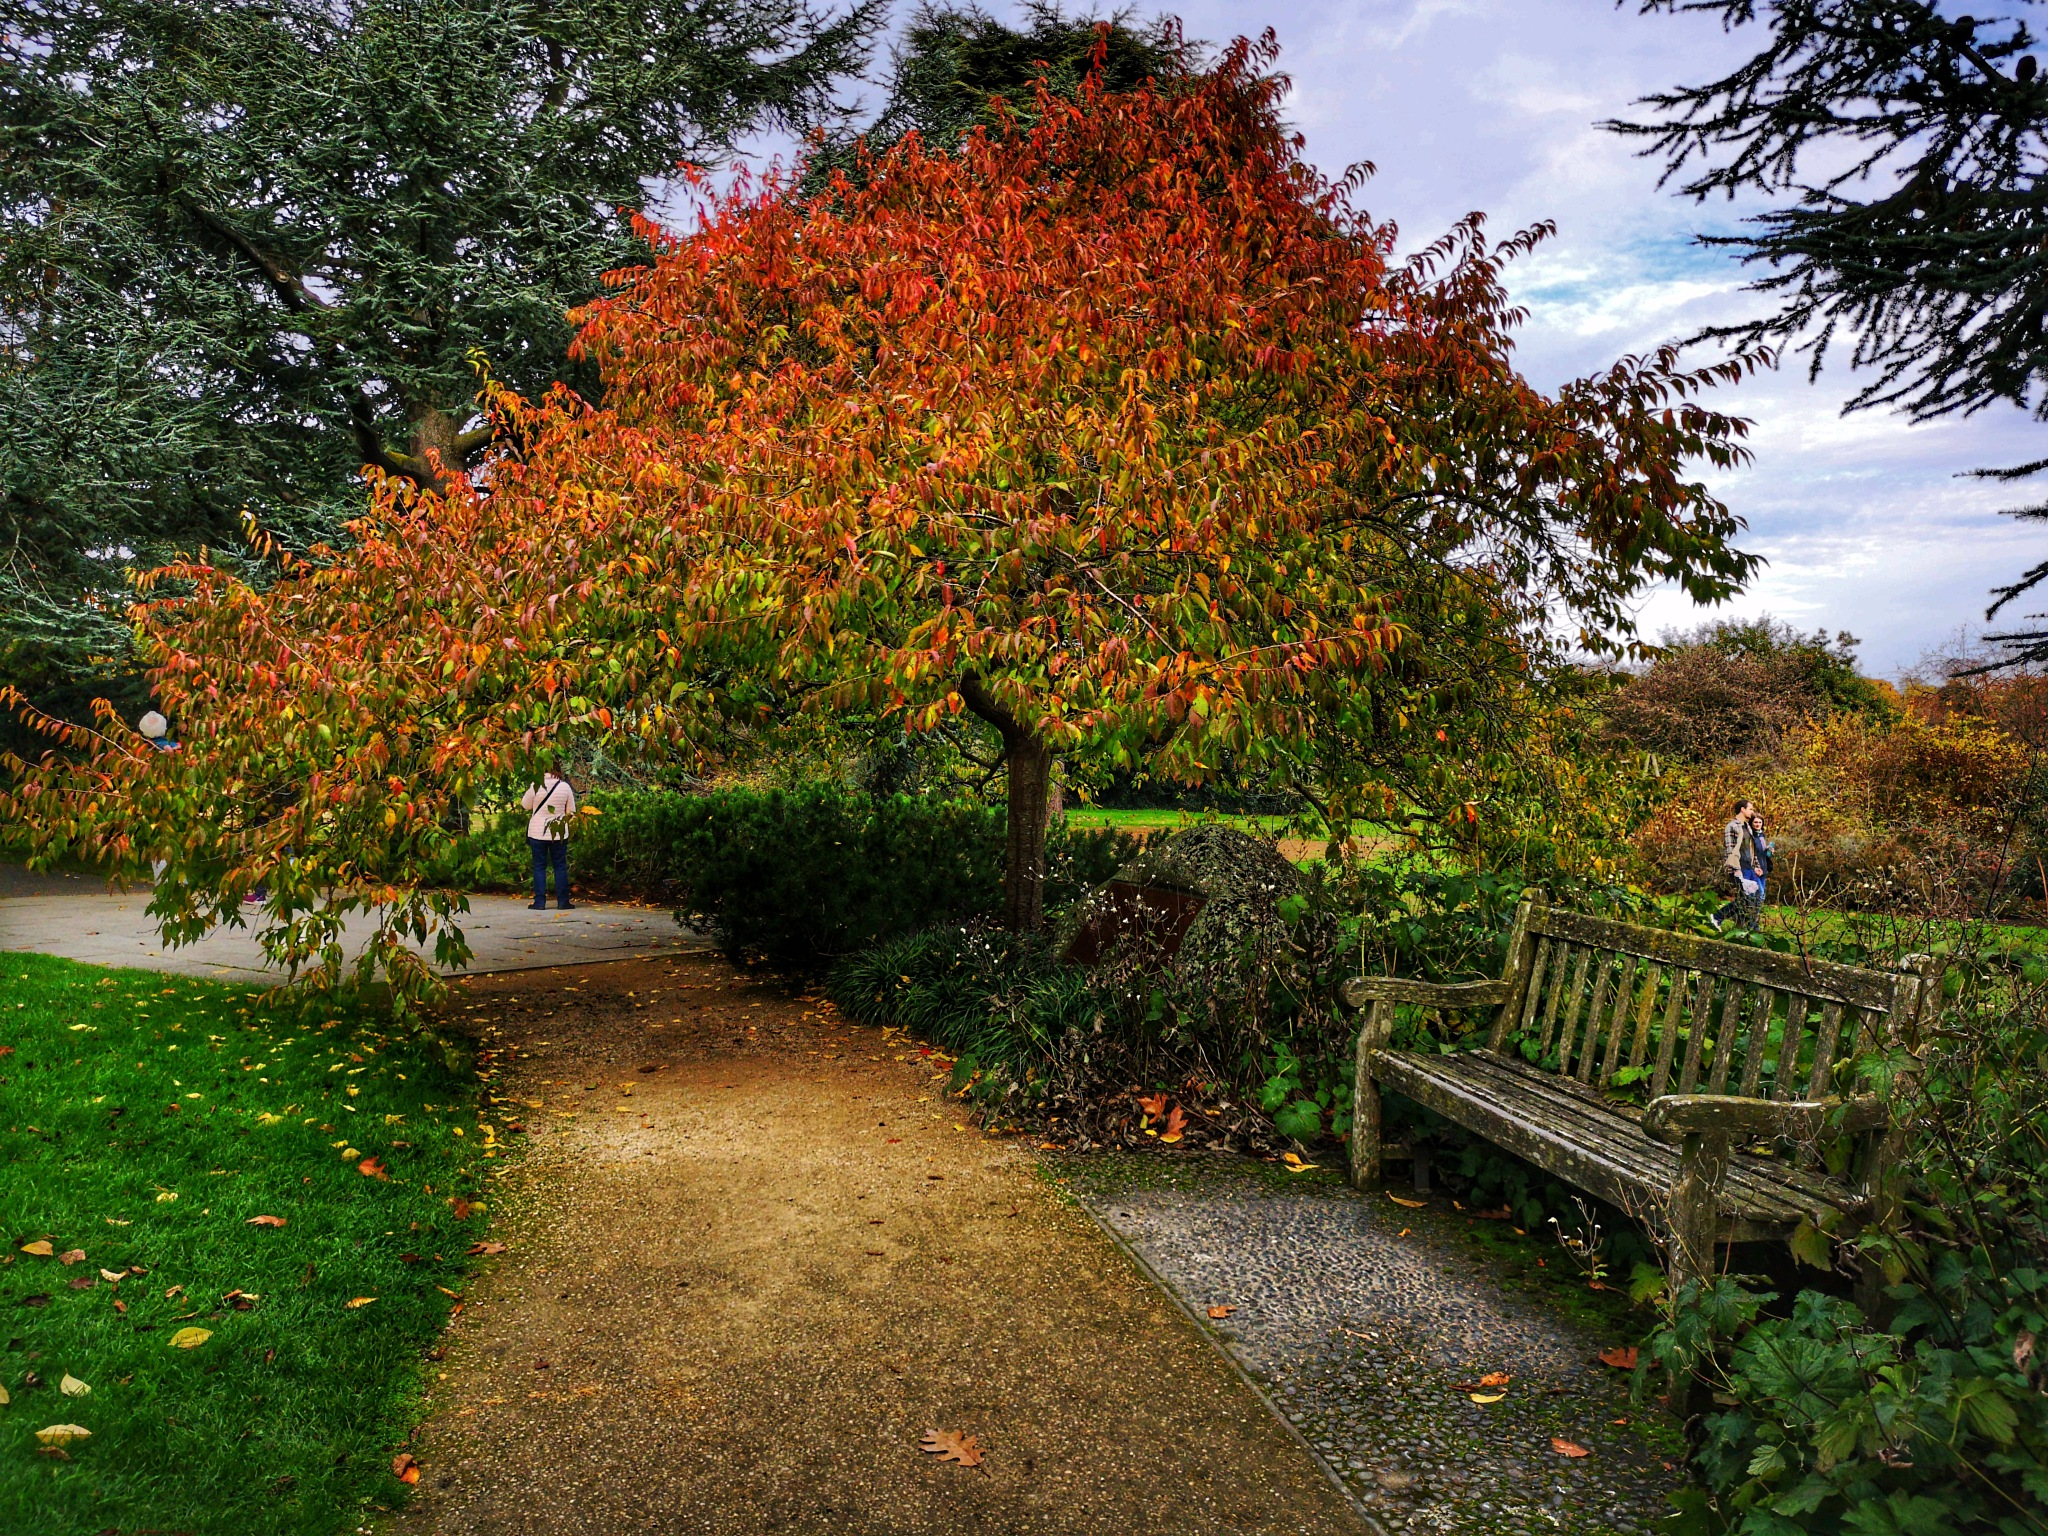 A bench and a beautiful tree in Kew Gardens  by Thomas White Photos